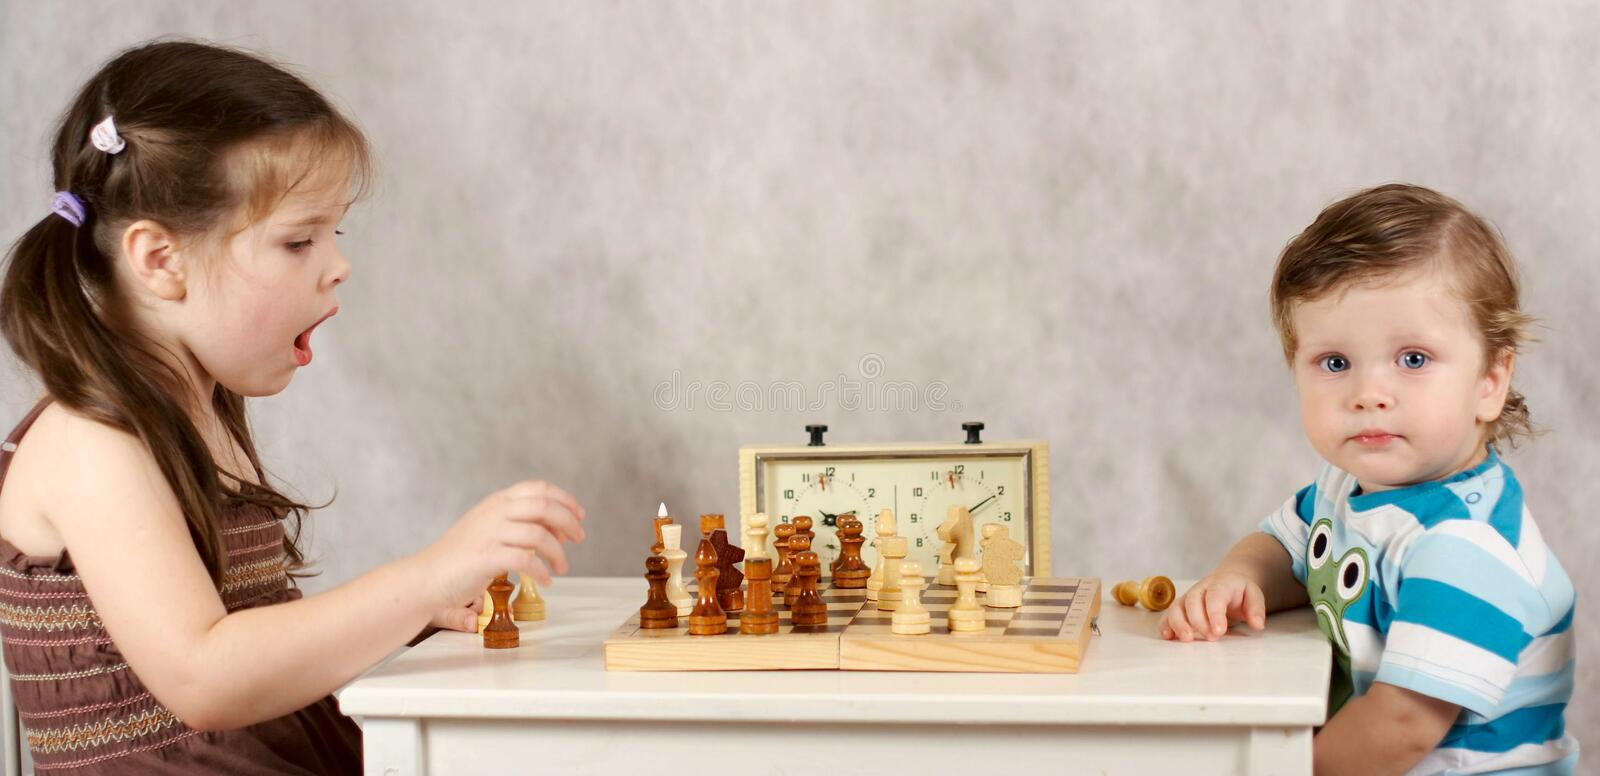 Download Serious kids playing chess stock image. Image of entertainment - 11536223